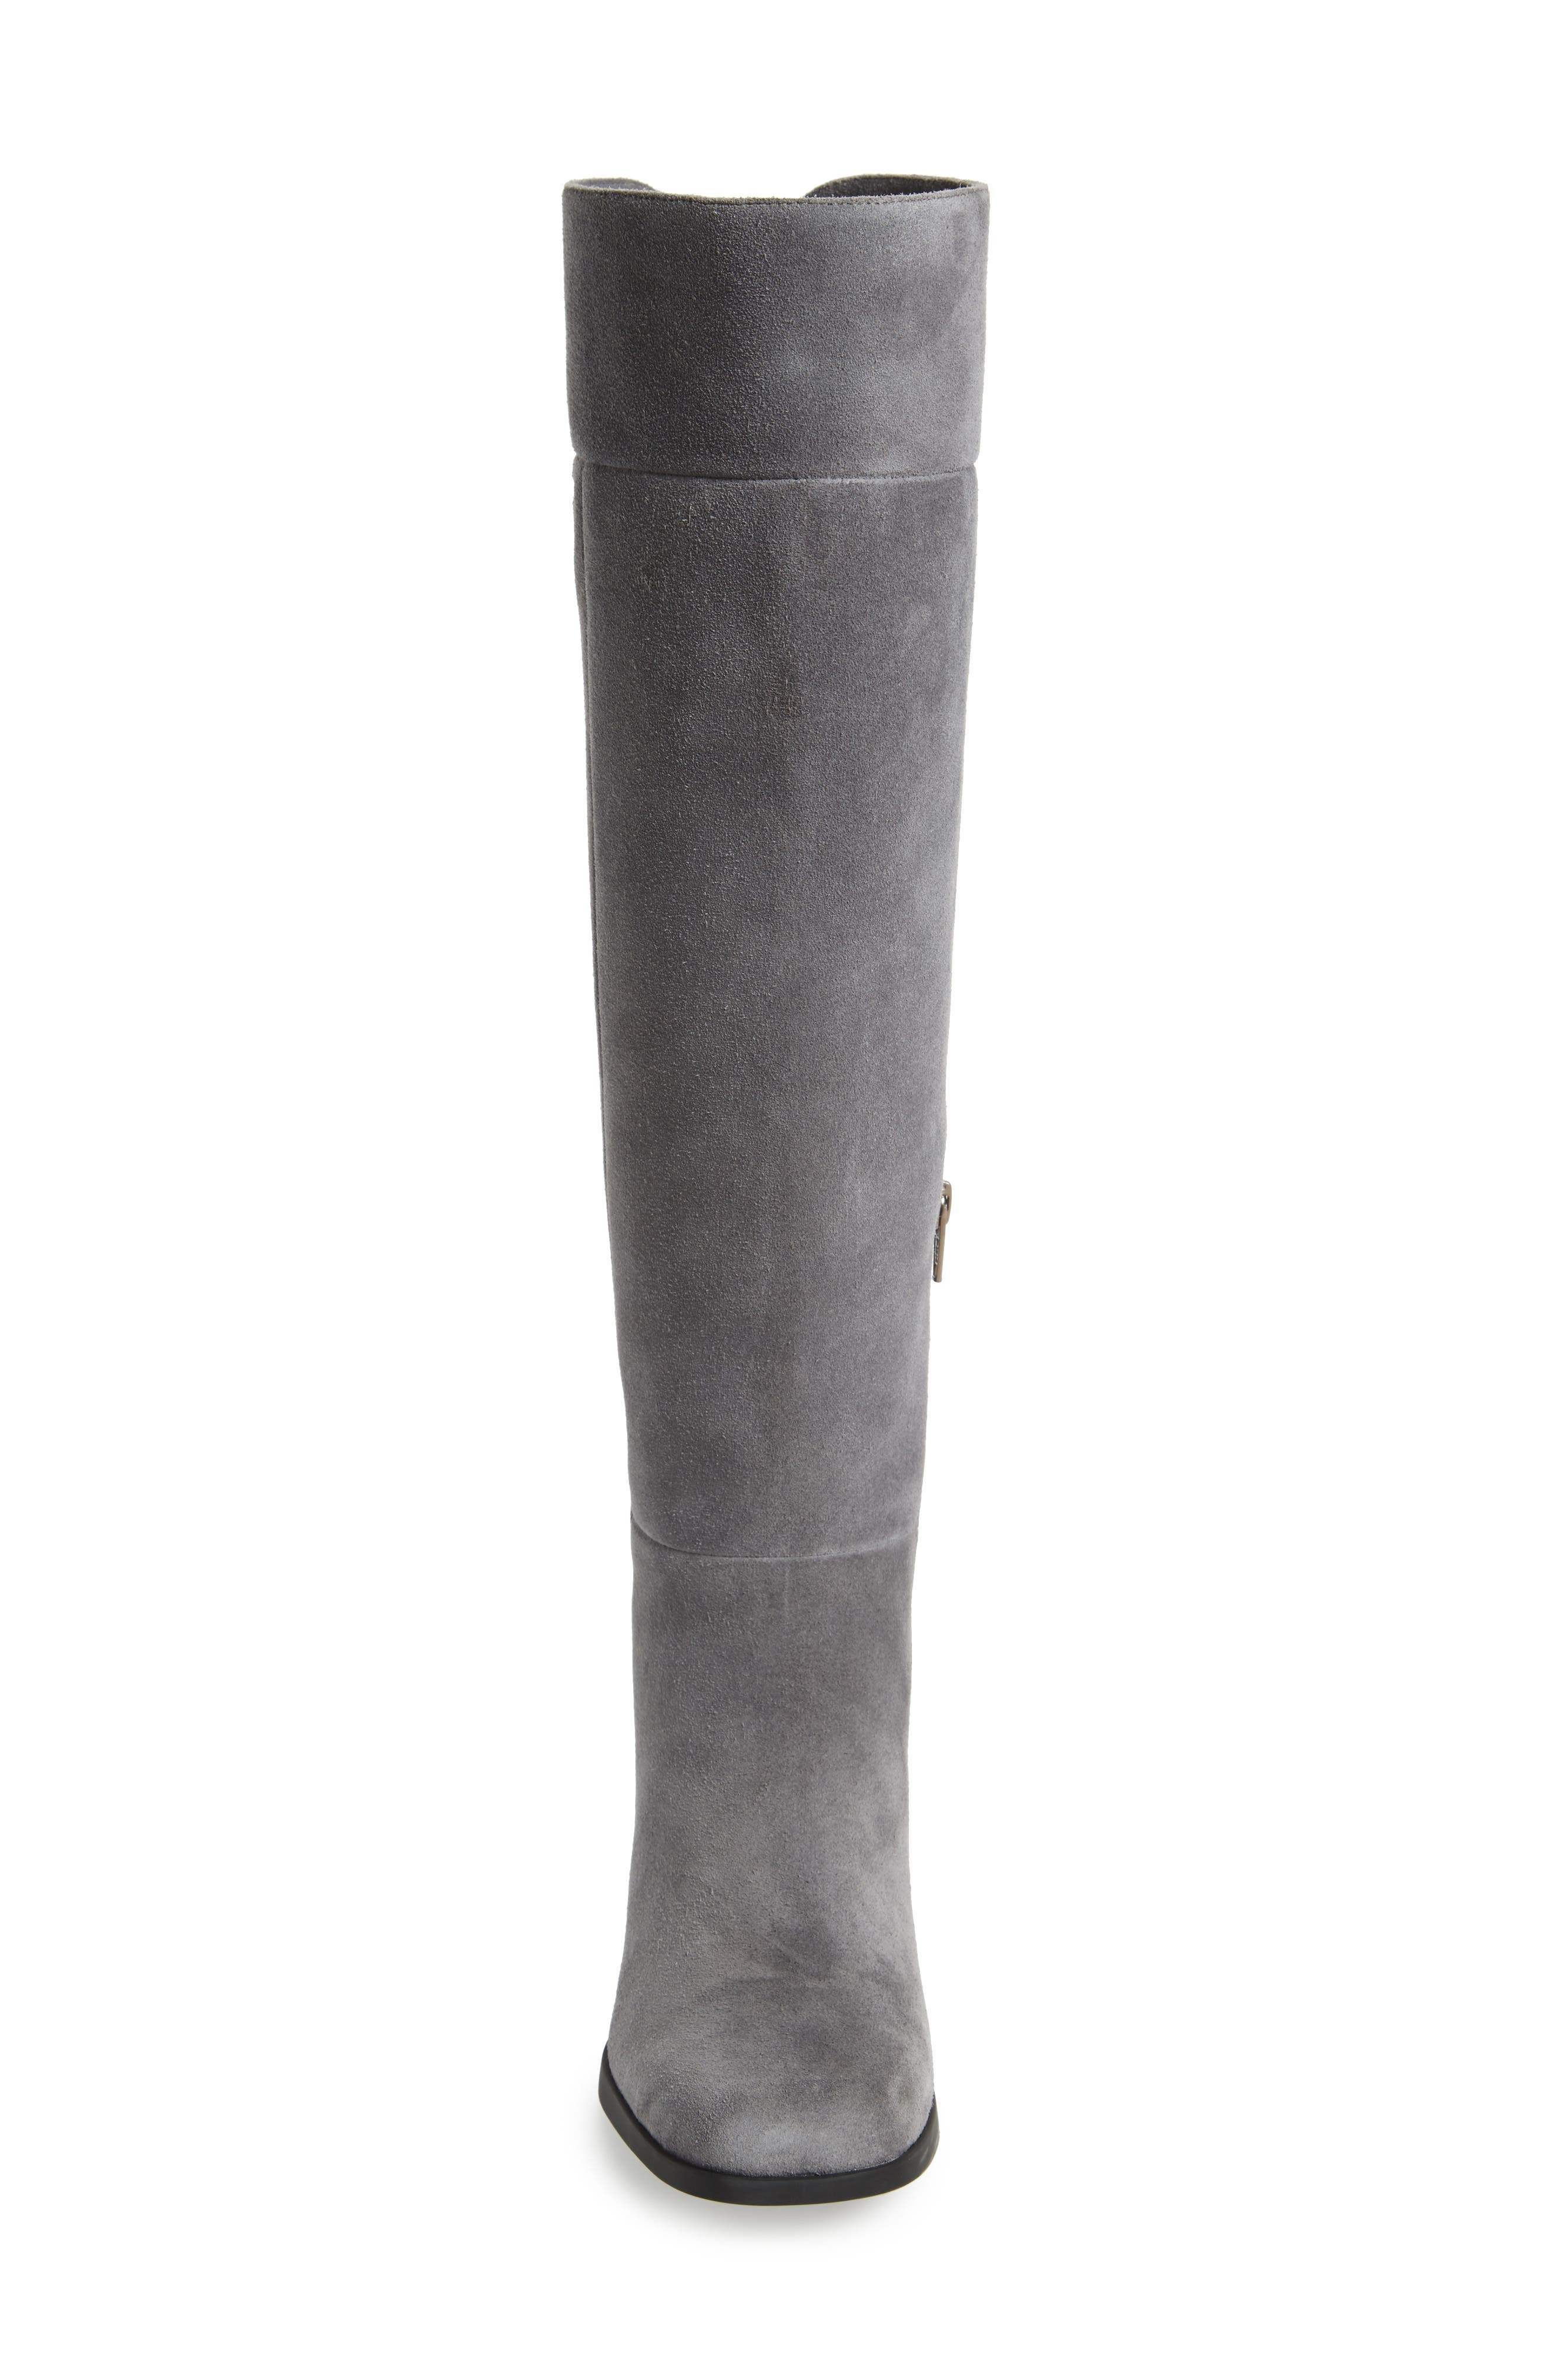 Kobo Knee High Boot,                             Alternate thumbnail 4, color,                             Grey Leather